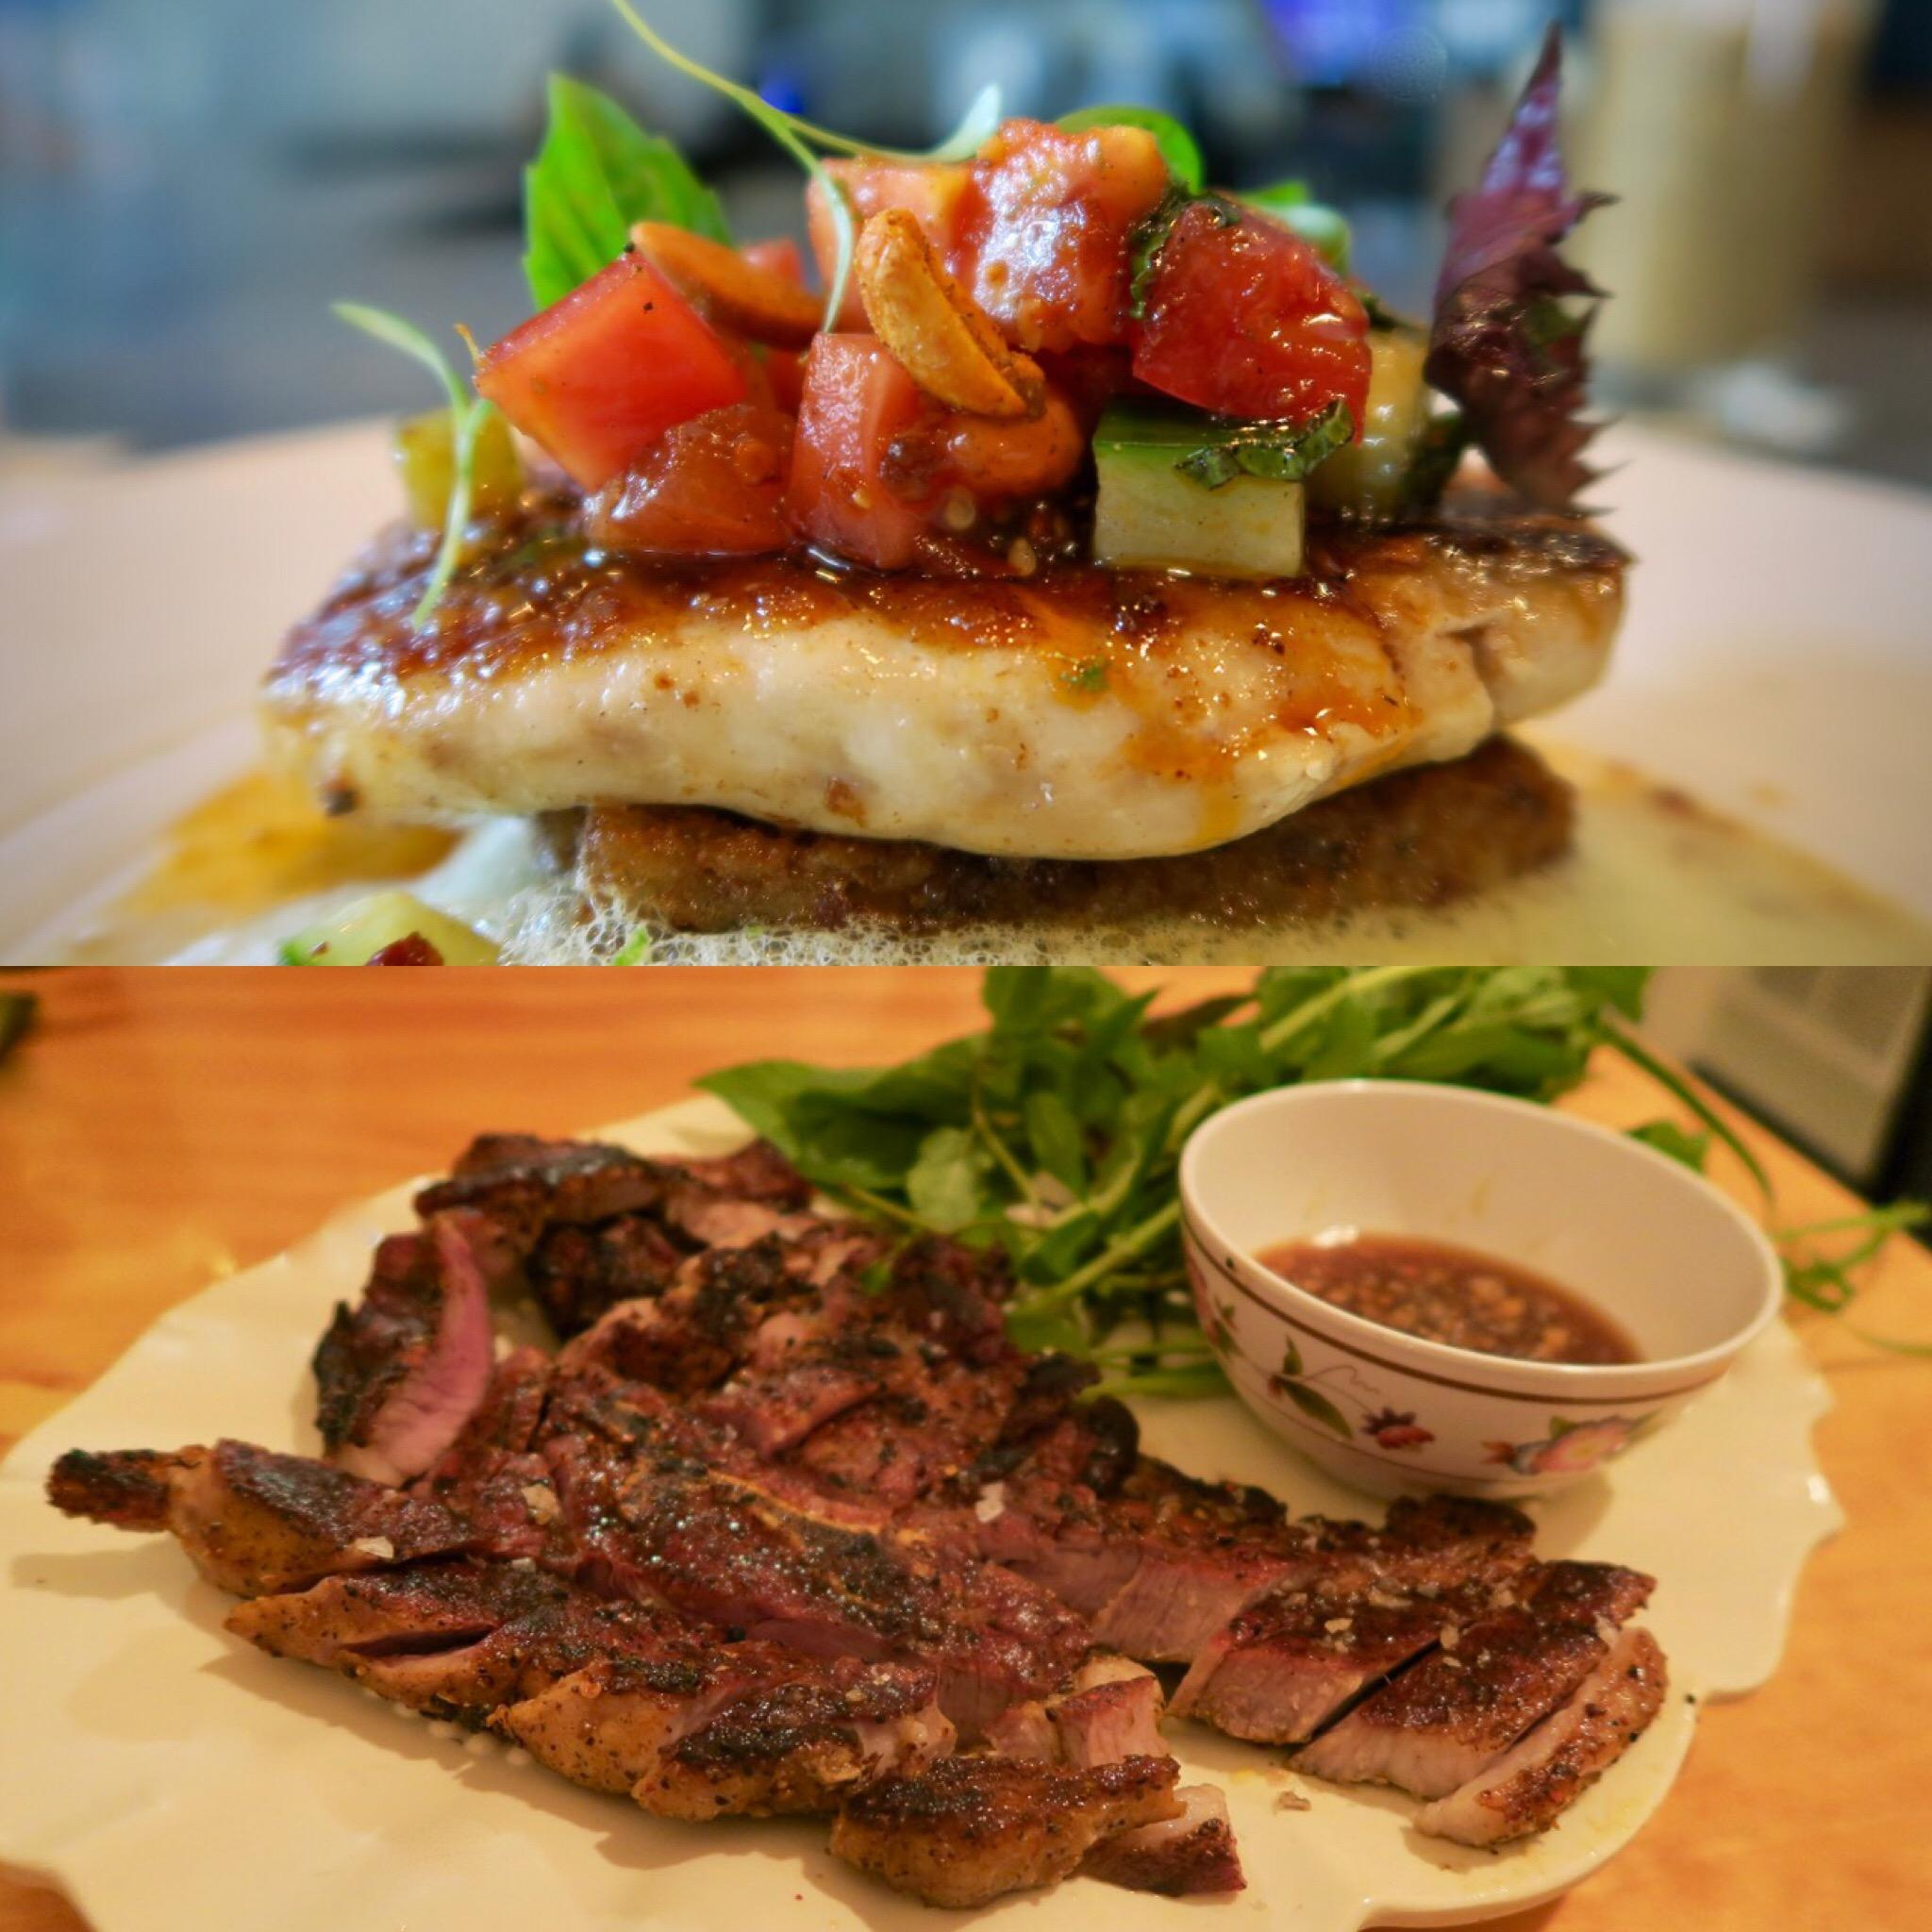 Red Sner From Maypop Top And Char Grilled Pork Steak With Herbs Marjie S Grill Two Innovative New Restaurants In Orleans